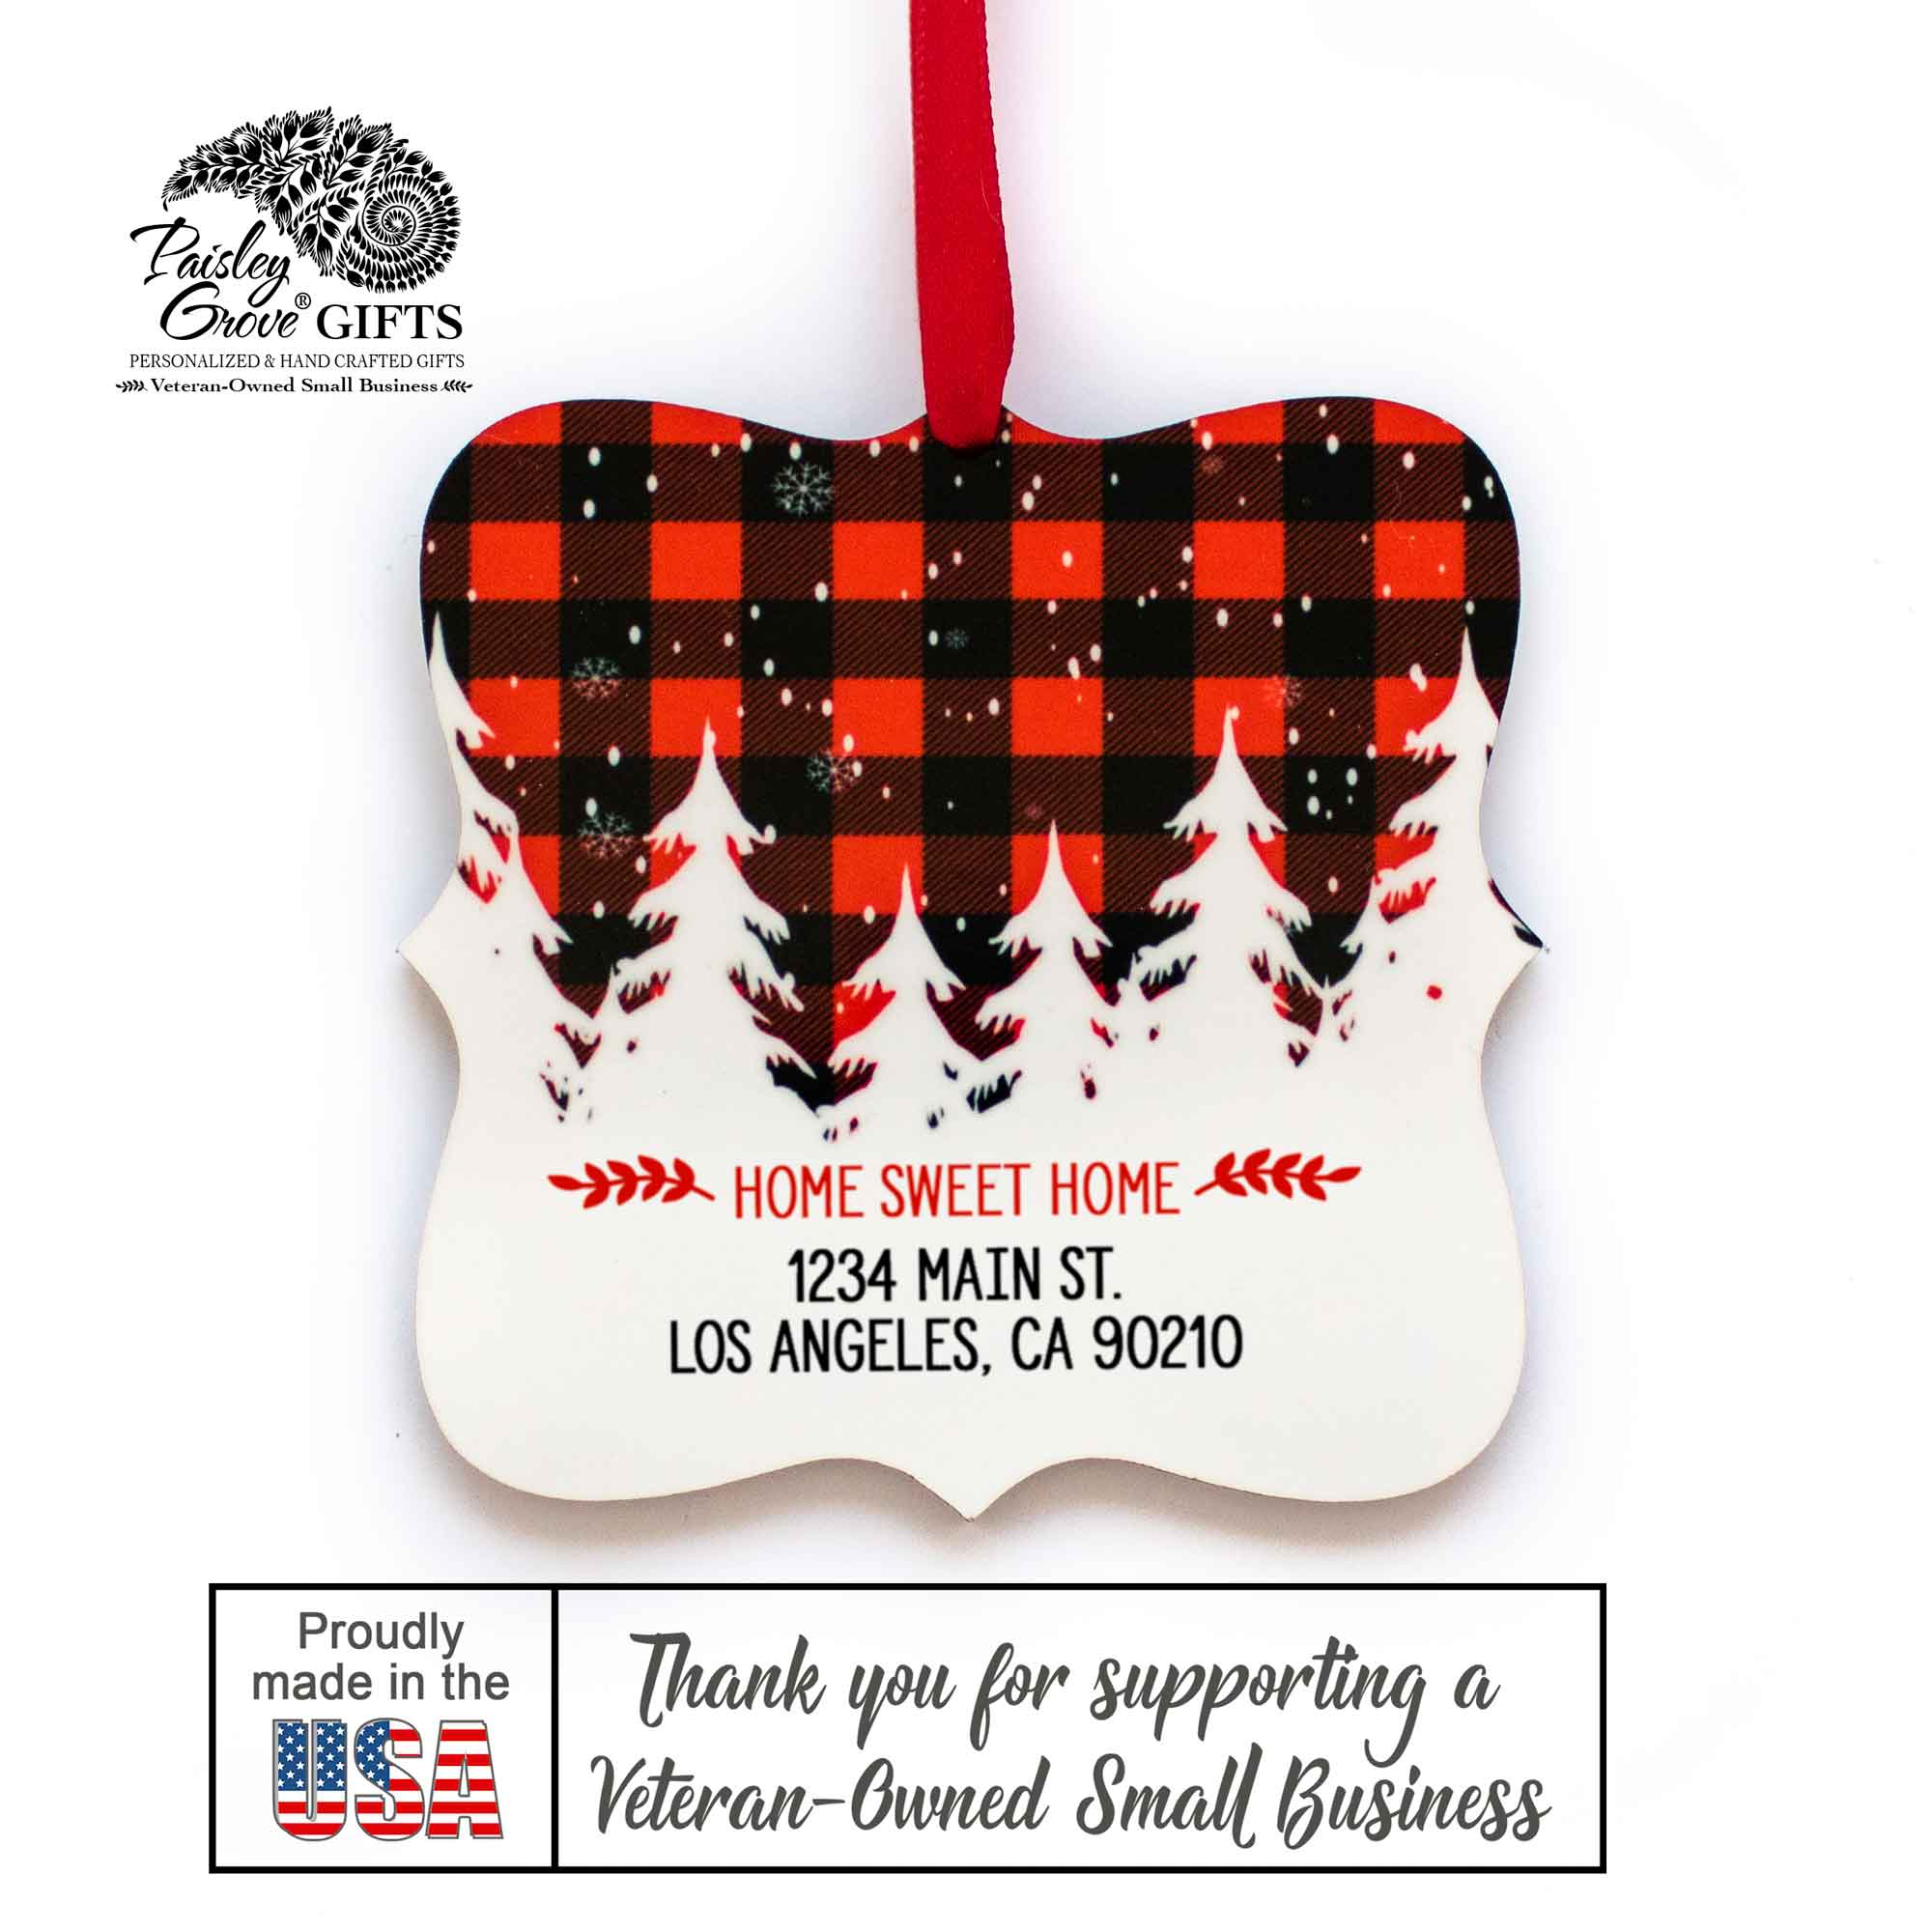 CopyrightPaisleyGroveGIFTS S502h Our First Christmas in our New Home Christmas Ornament Customized Gift Made in the USA